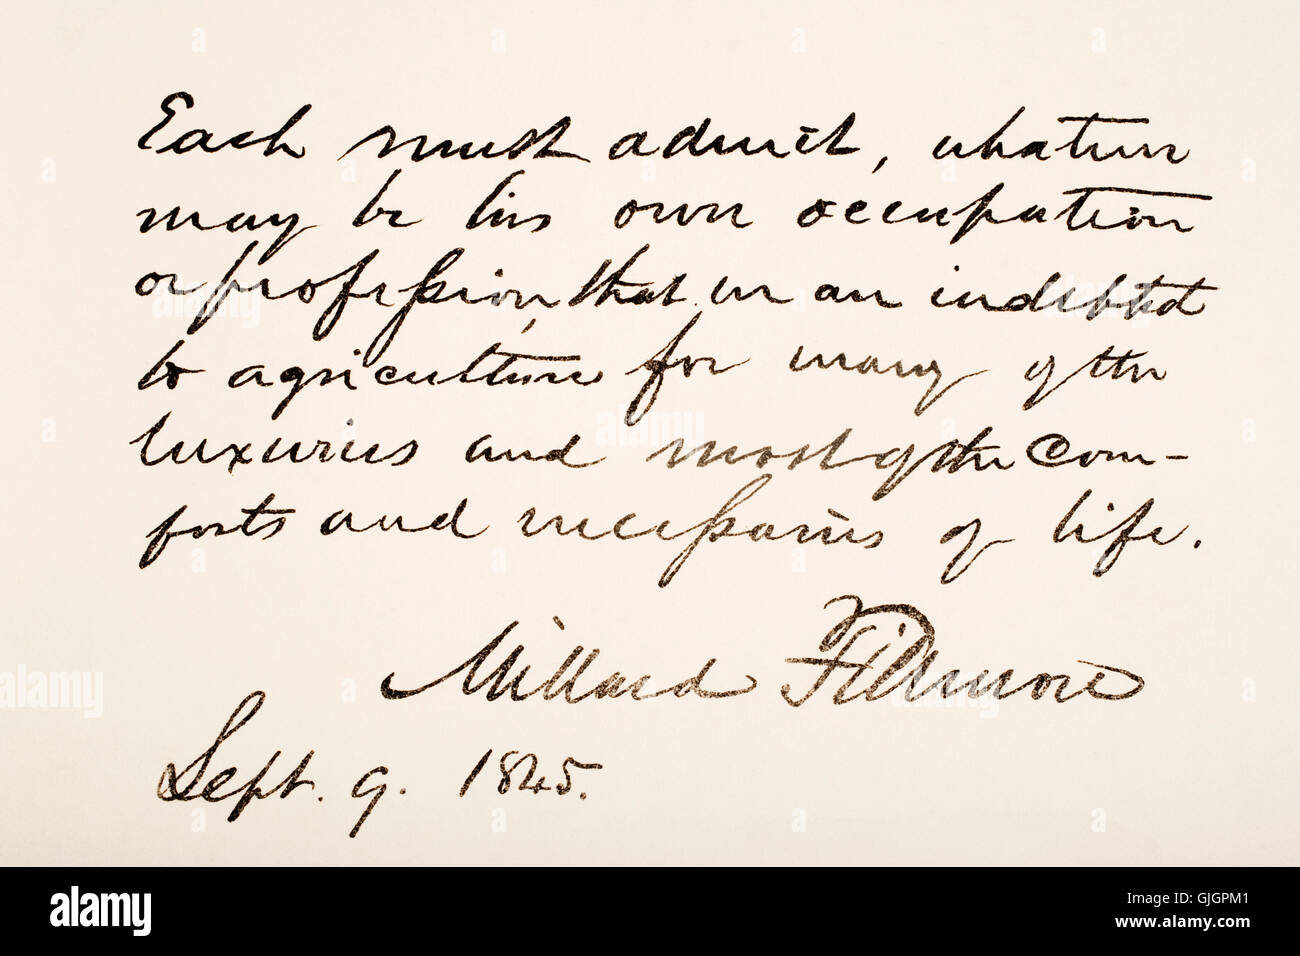 Millard Fillmore, 1800 - 1874. 13th president of the United States of America.  Hand writing sample. Stock Photo